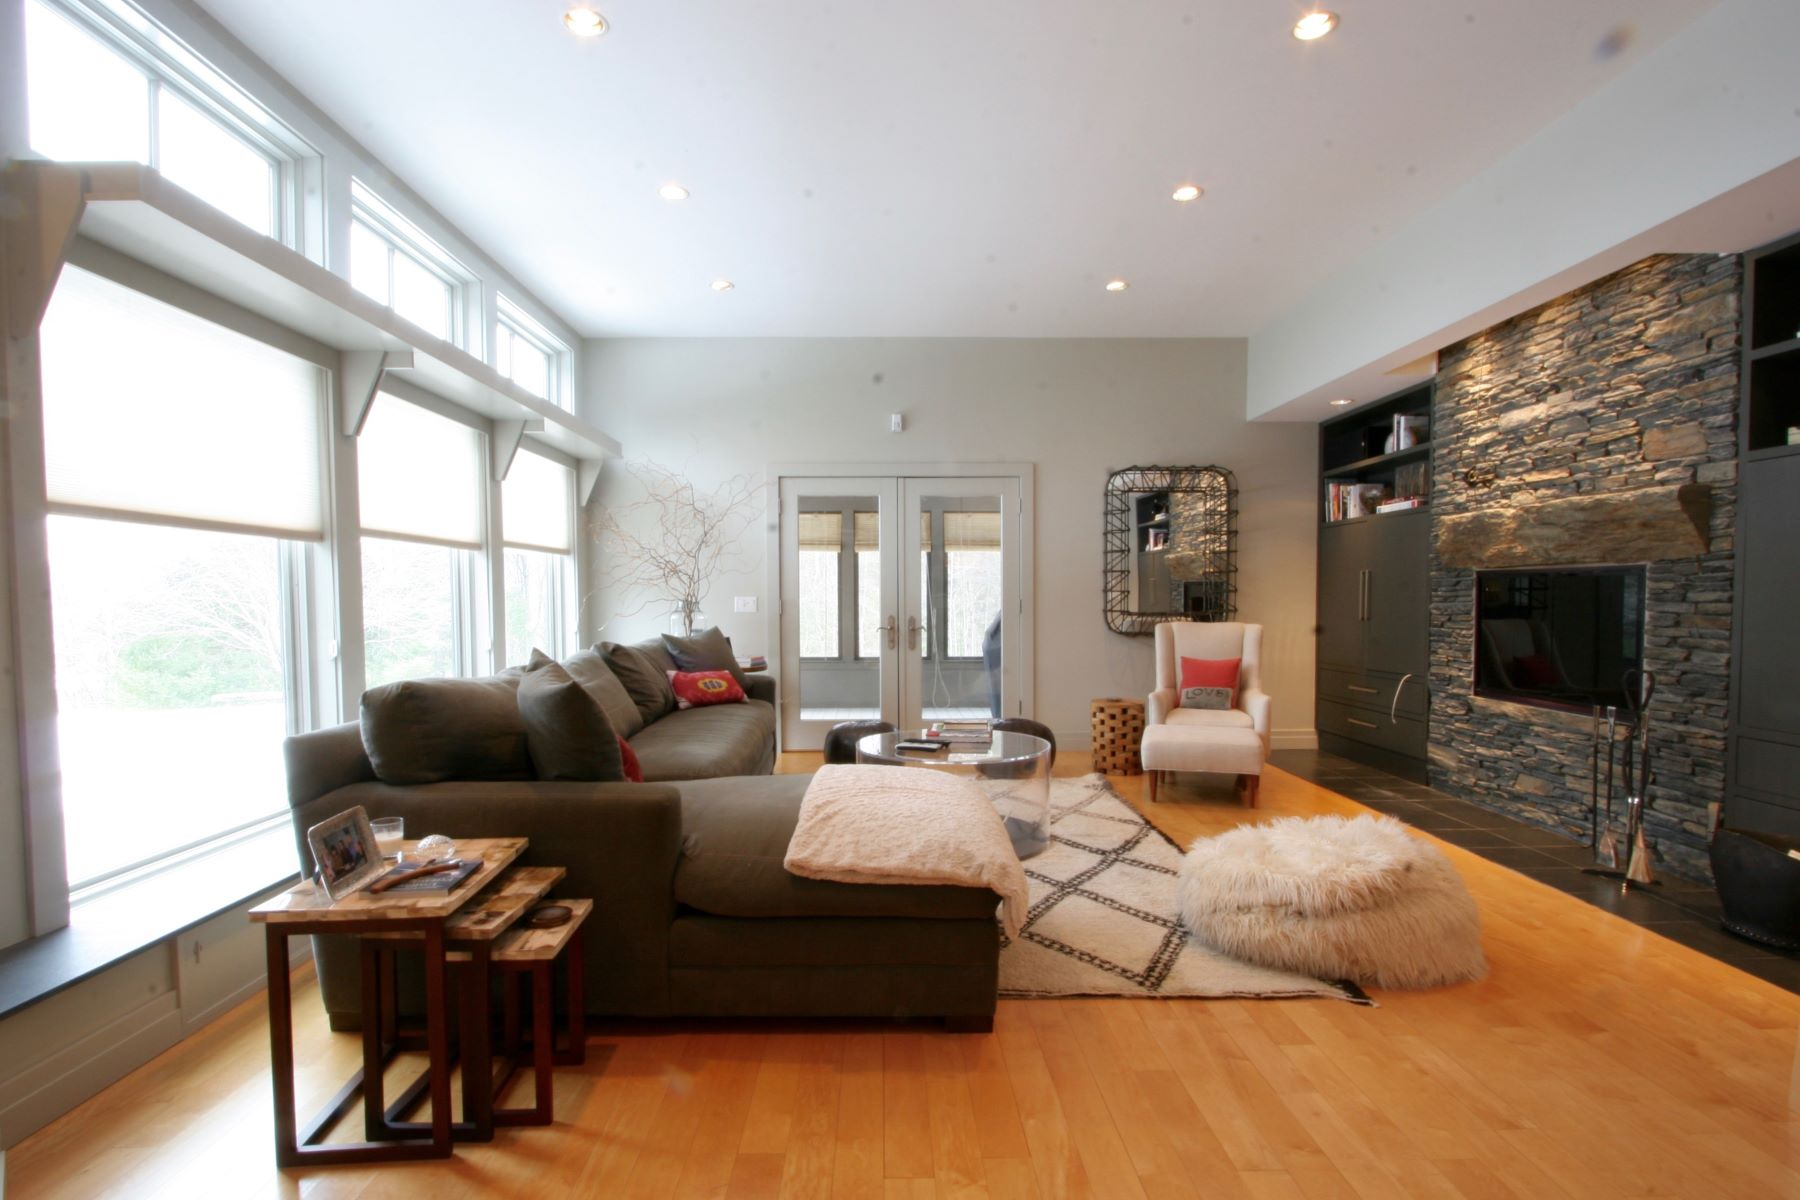 Single Family Home for Rent at Stunning Contemporary with Big Views 54 Crooked Hill Rd Alford, Massachusetts 01230 United States